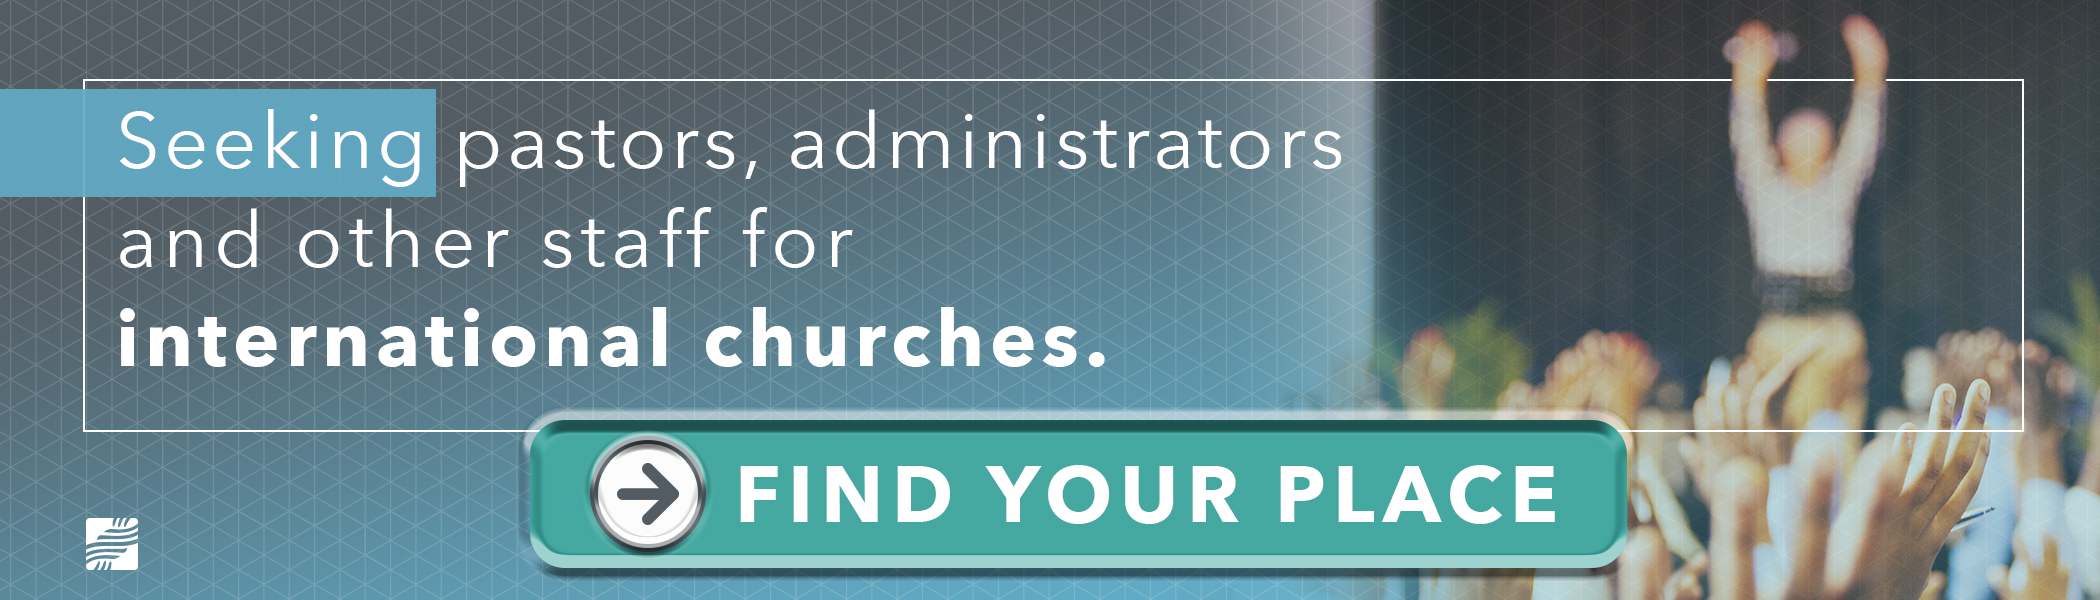 Seeking pastors, administrators and other staff for international churches. Click here for opportunities.